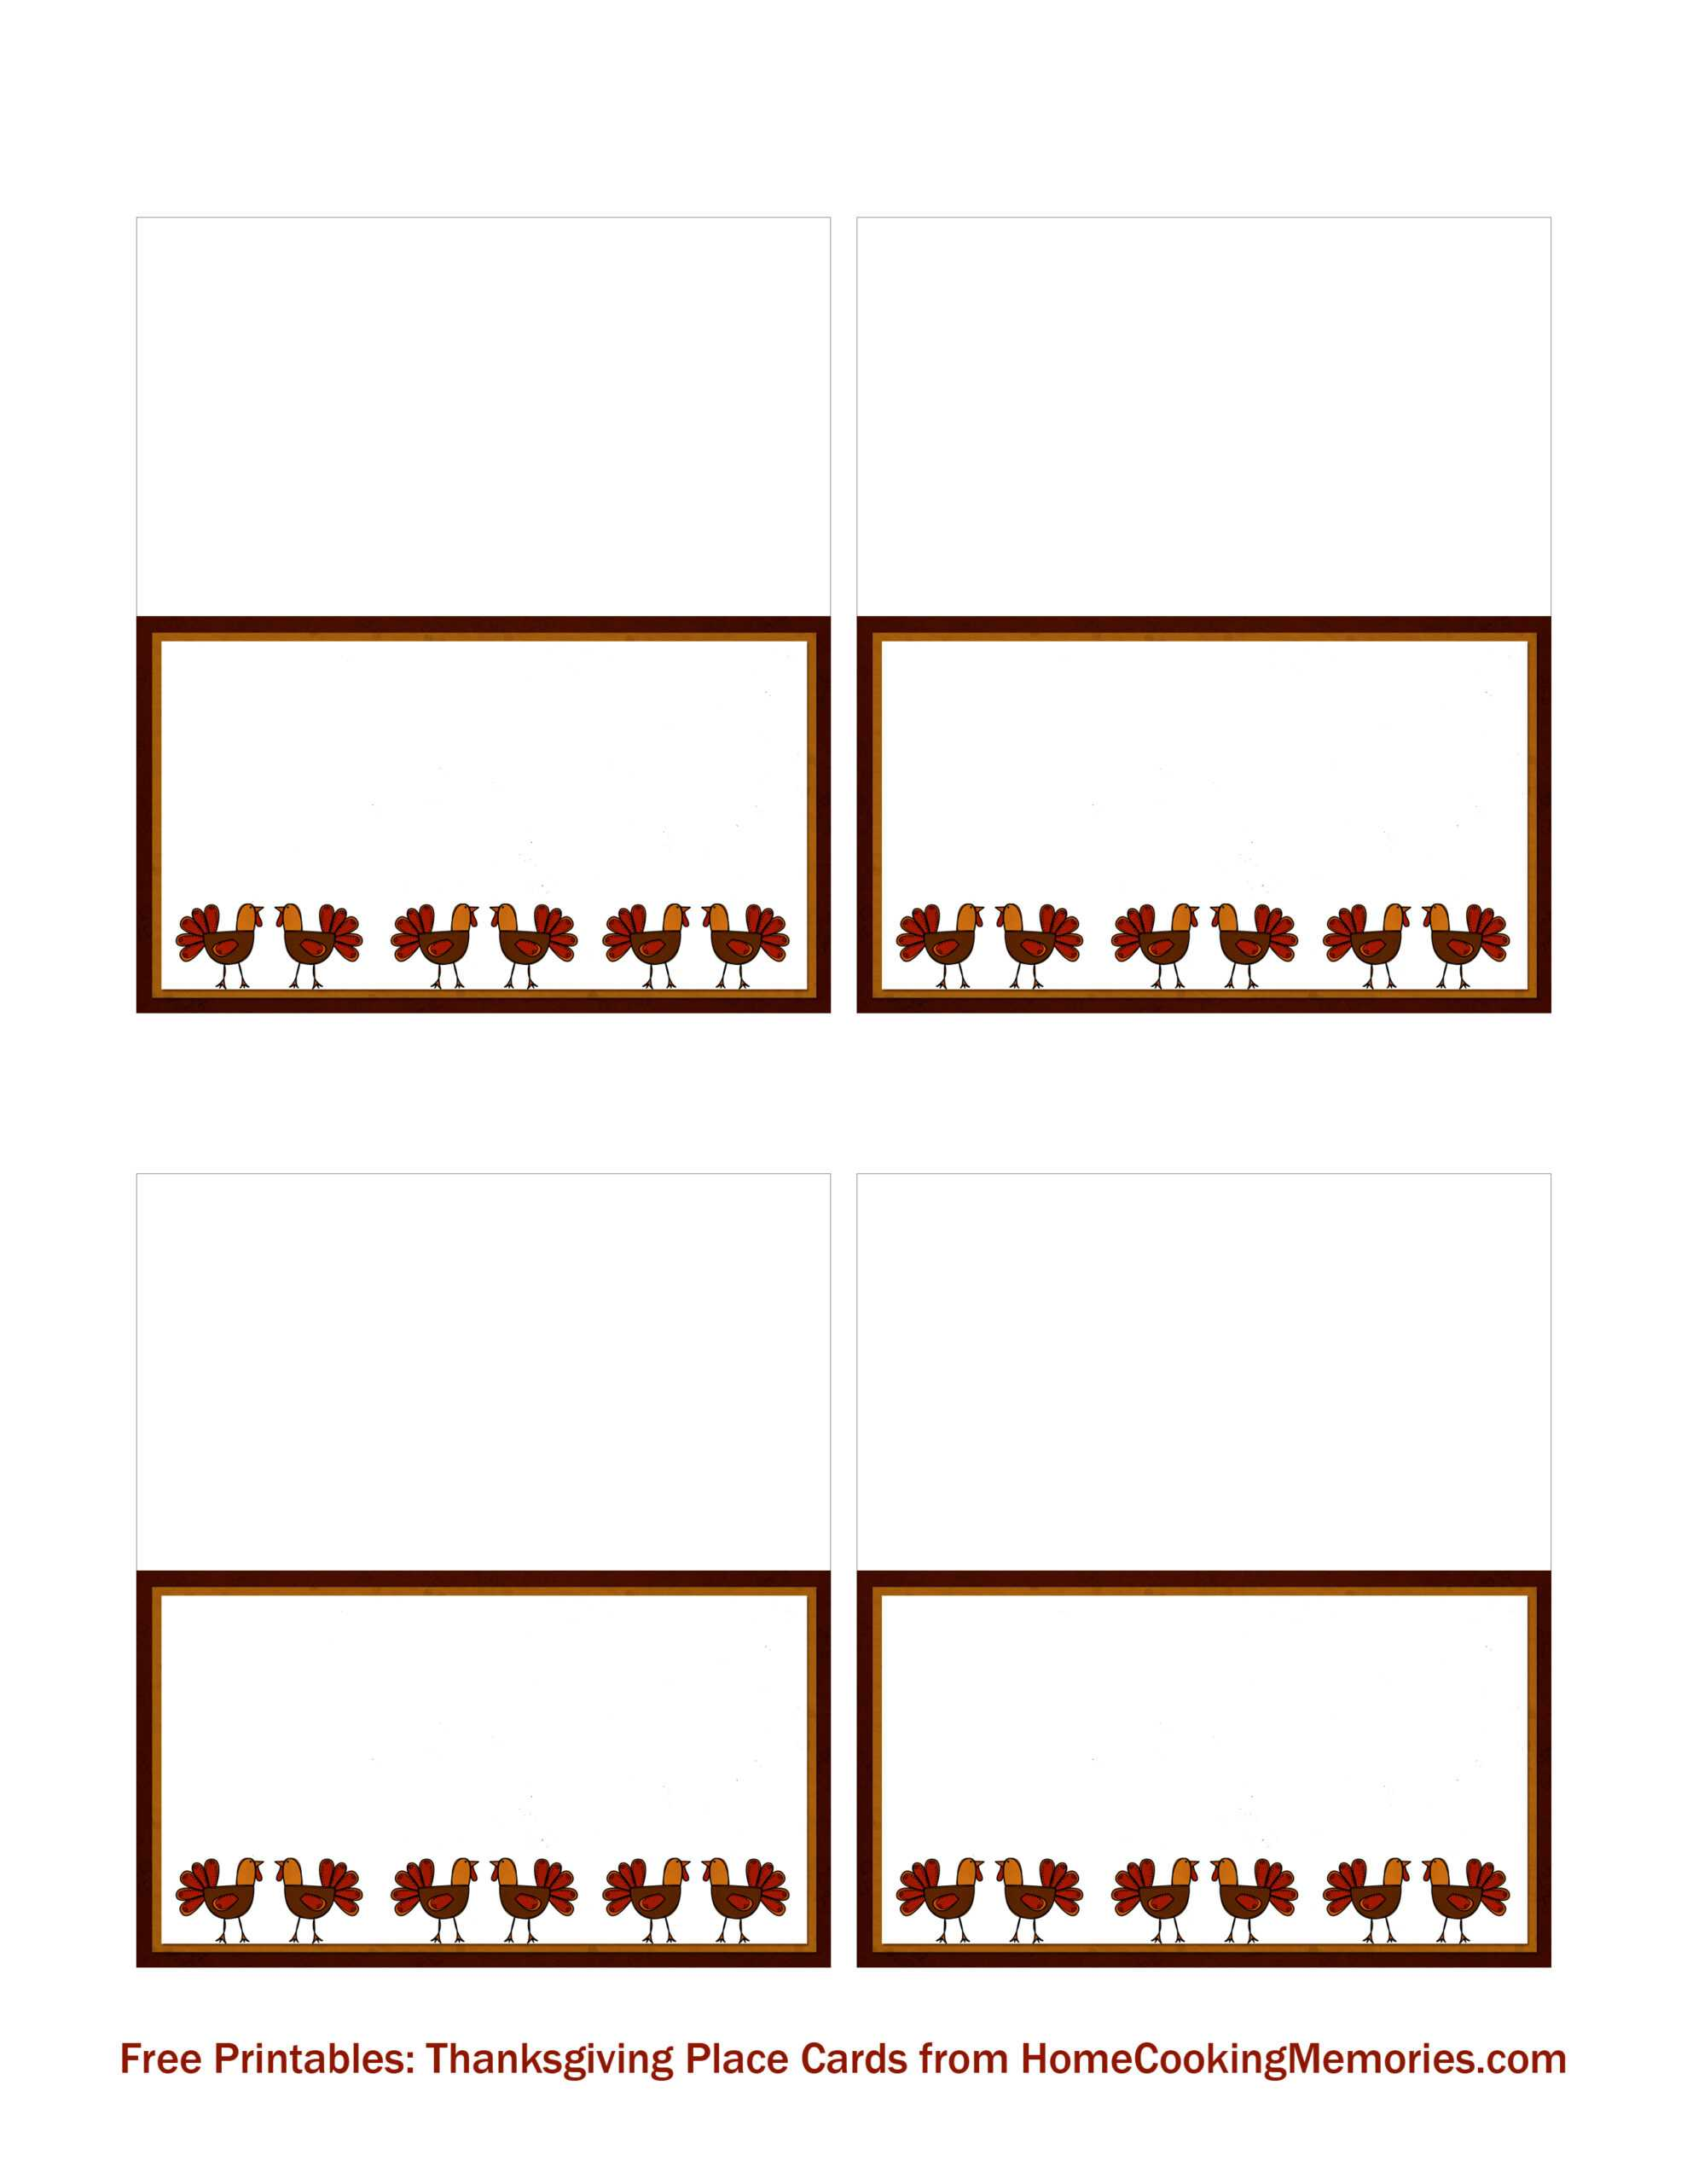 Free Printables: Thanksgiving Place Cards - Home Cooking Throughout Thanksgiving Place Card Templates